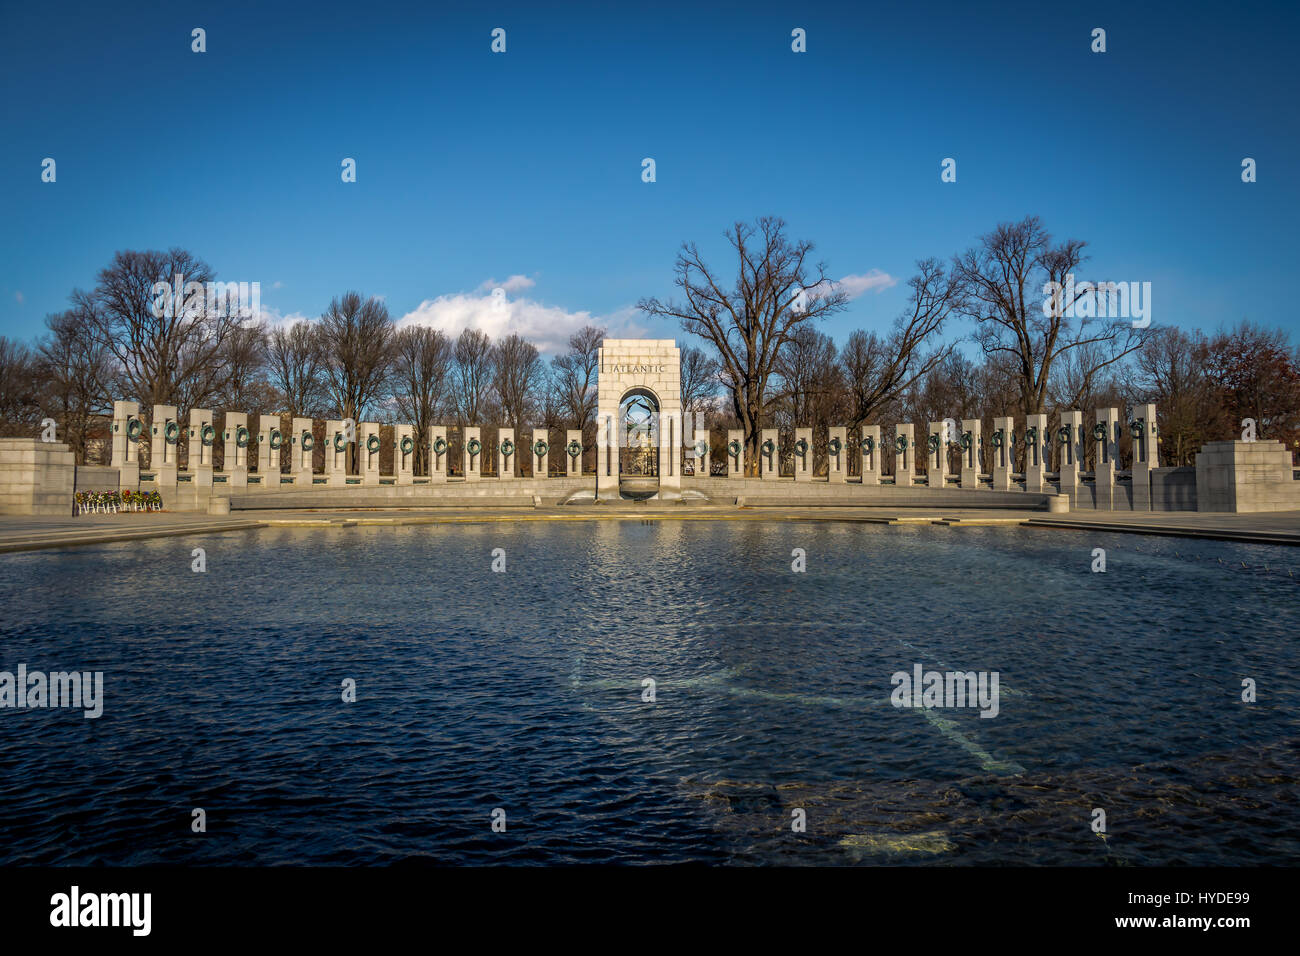 World War II Memorial - Washington, D.C., USA - Stock Image